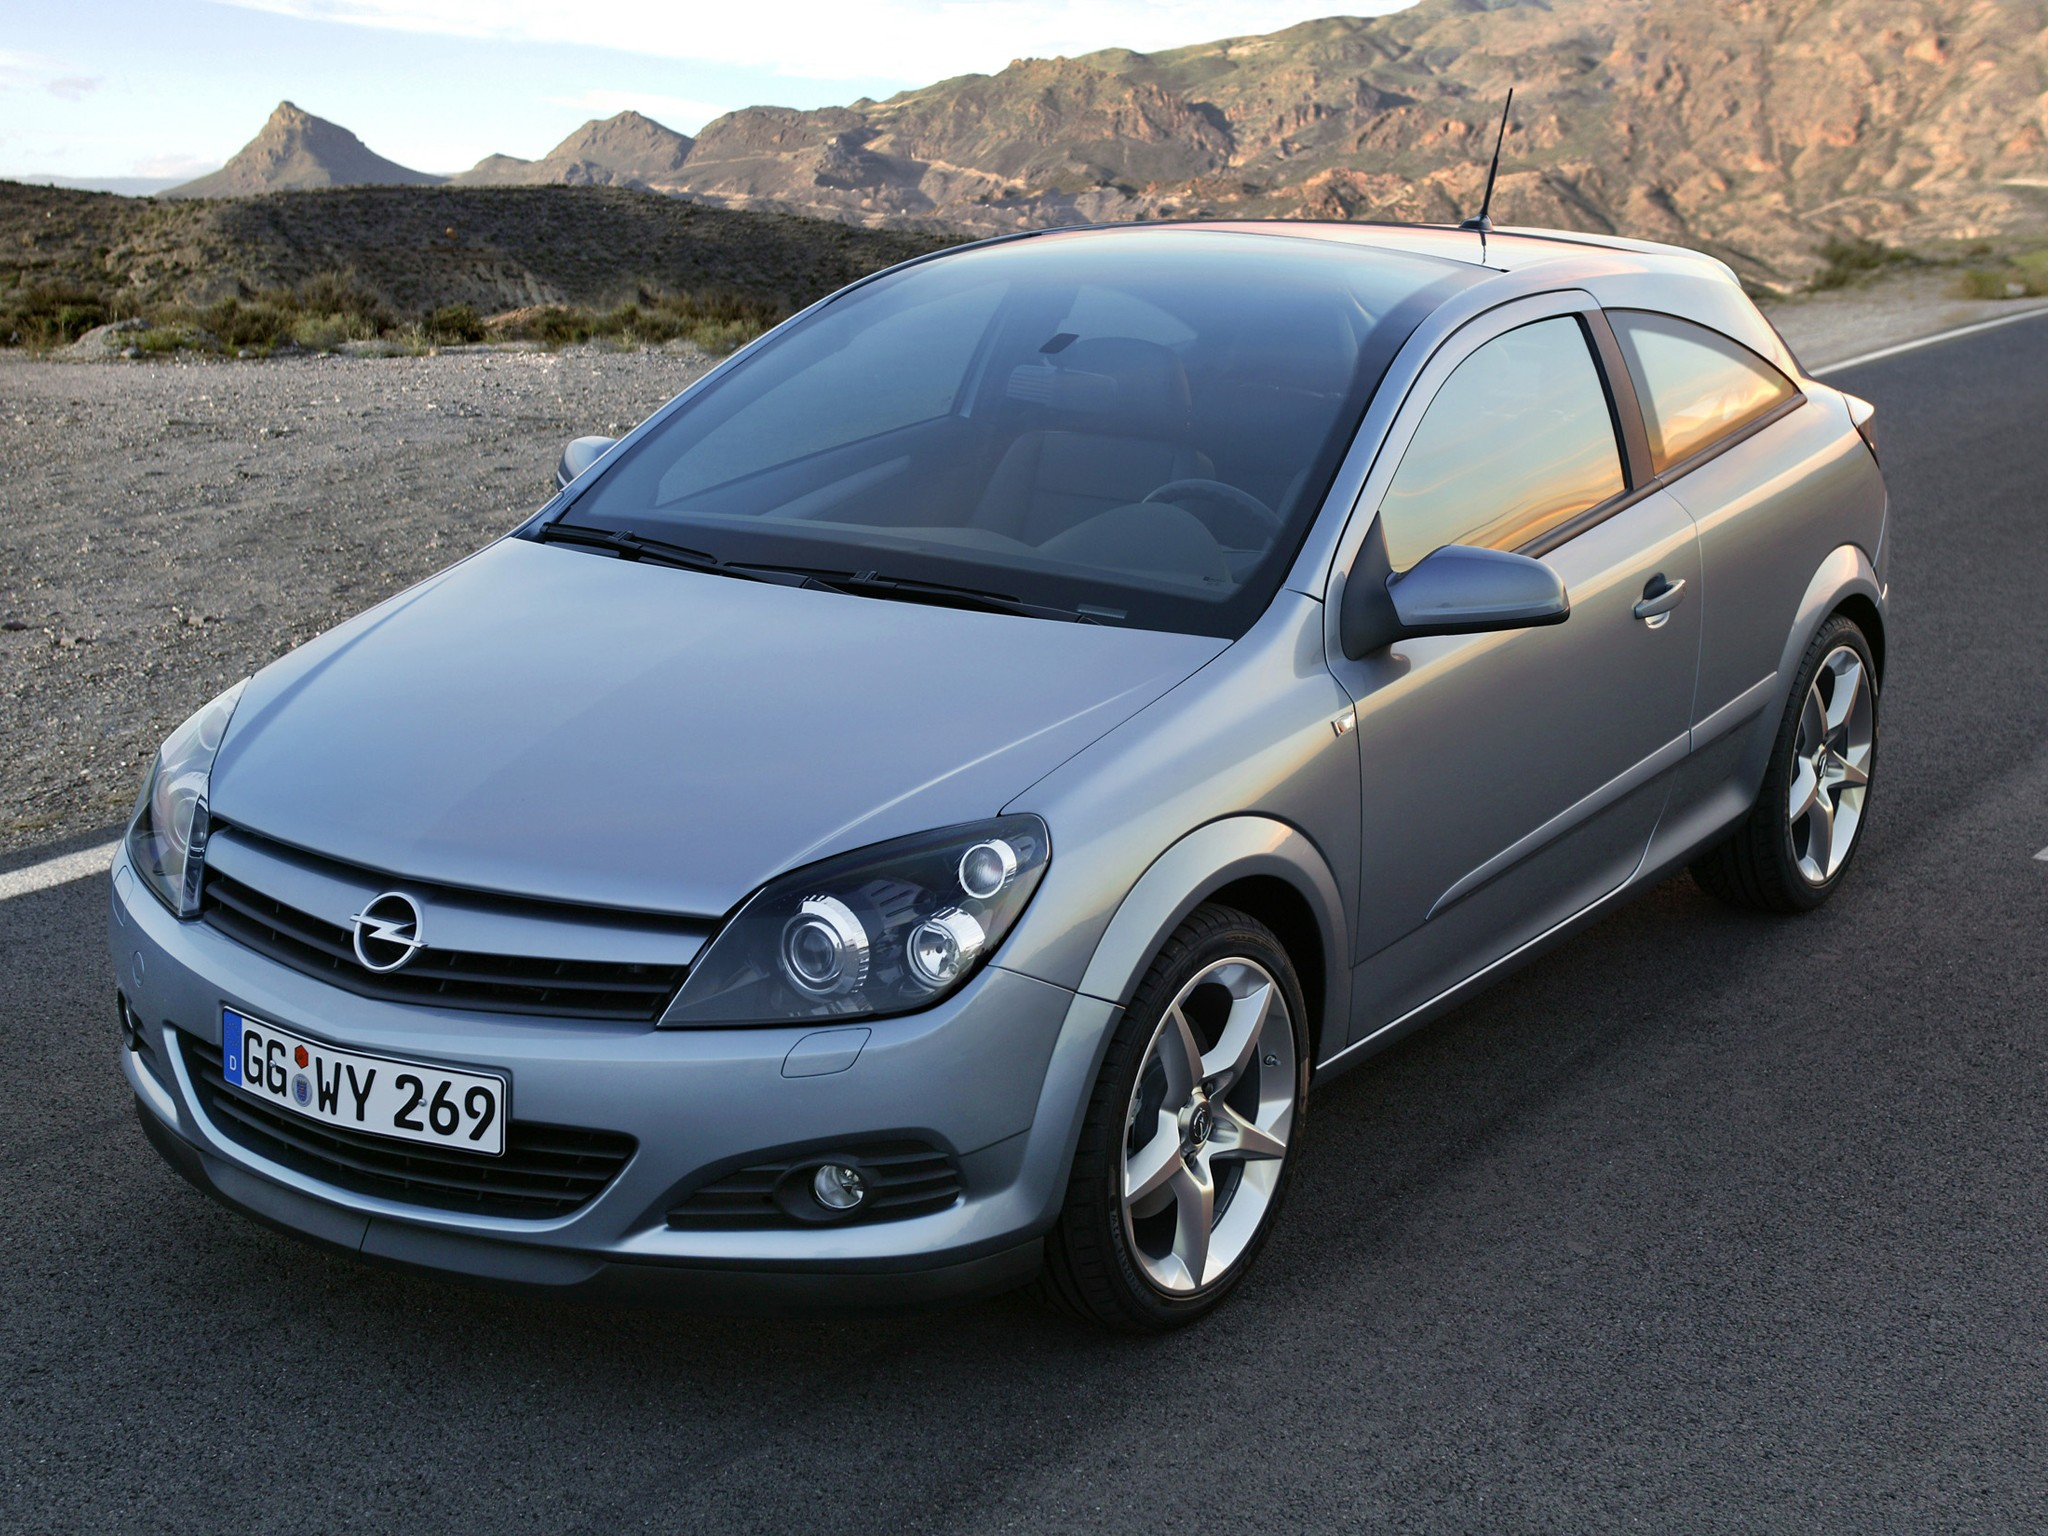 opel astra 3 doors gtc specs 2005 2006 2007 2008 2009 autoevolution. Black Bedroom Furniture Sets. Home Design Ideas